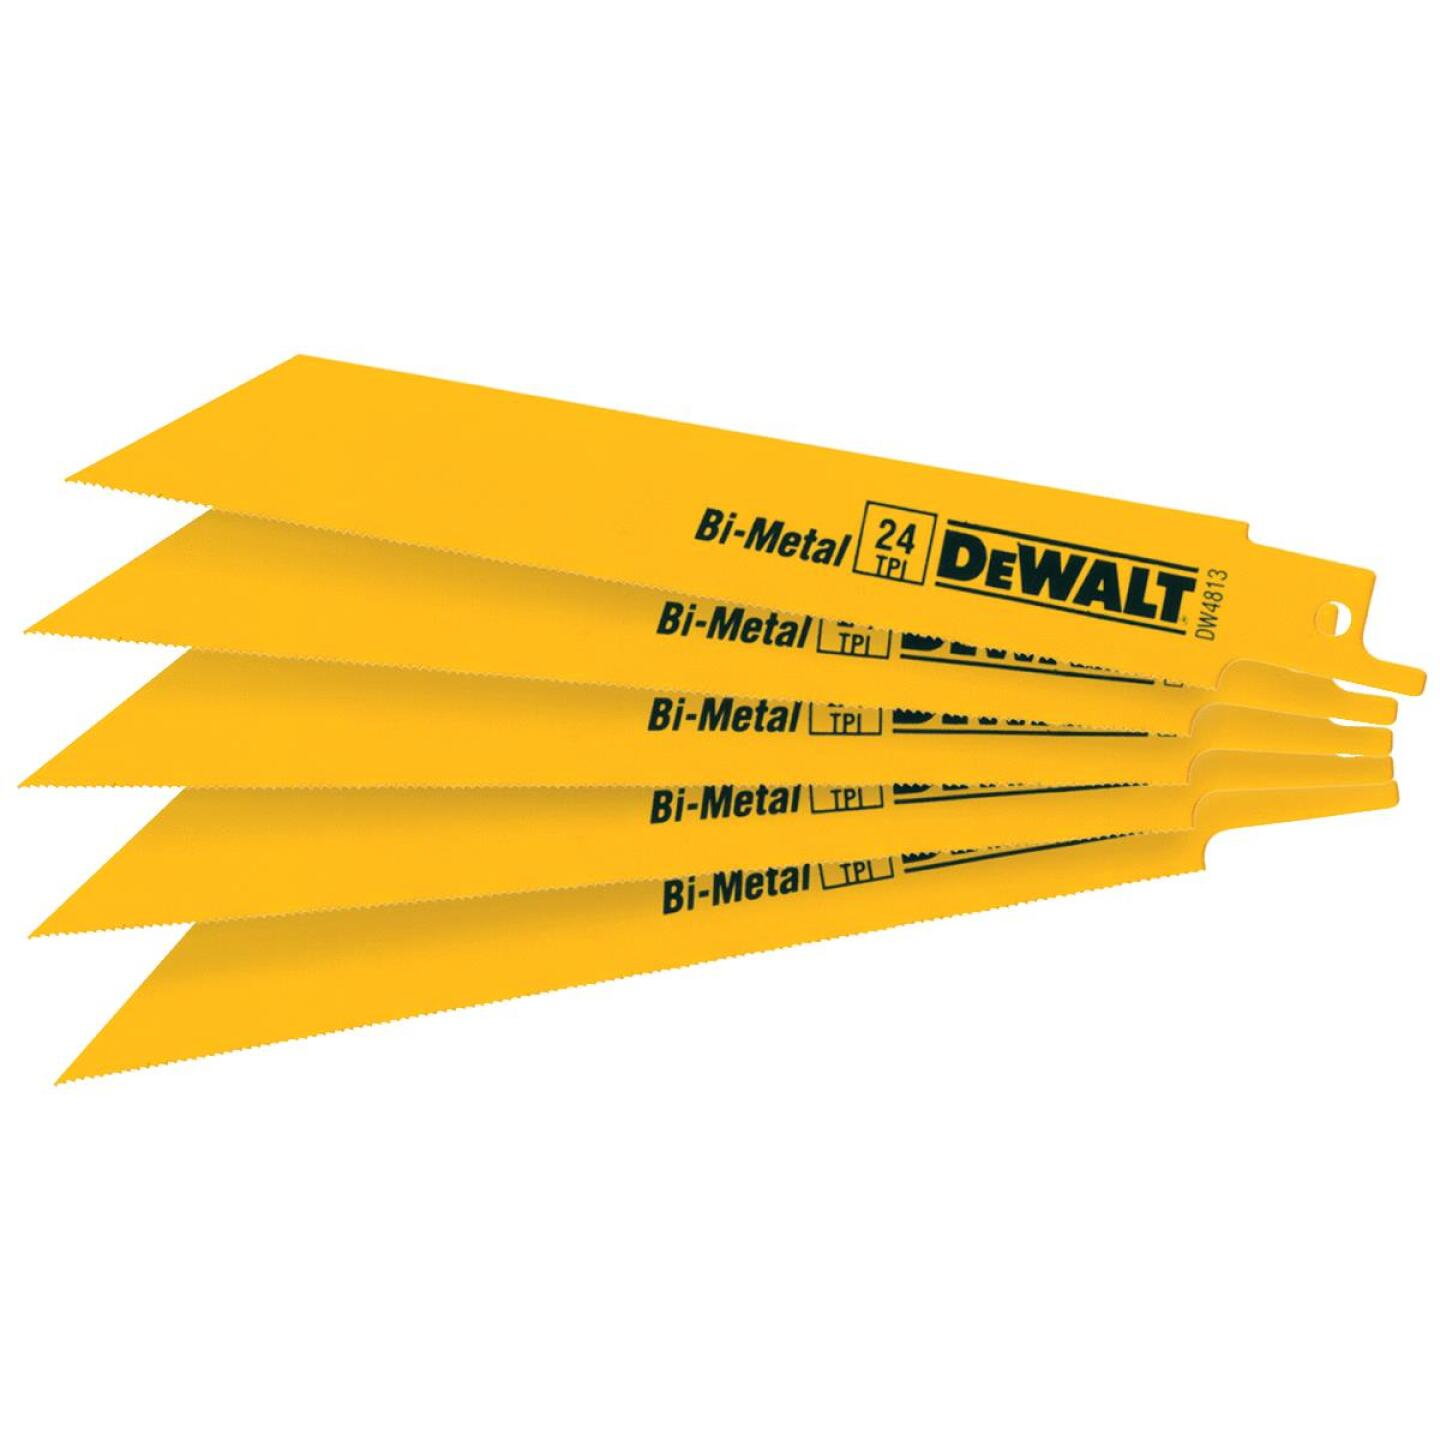 DeWalt 6 In. 24 TPI Thin Metal Reciprocating Saw Blade (5-Pack) Image 1